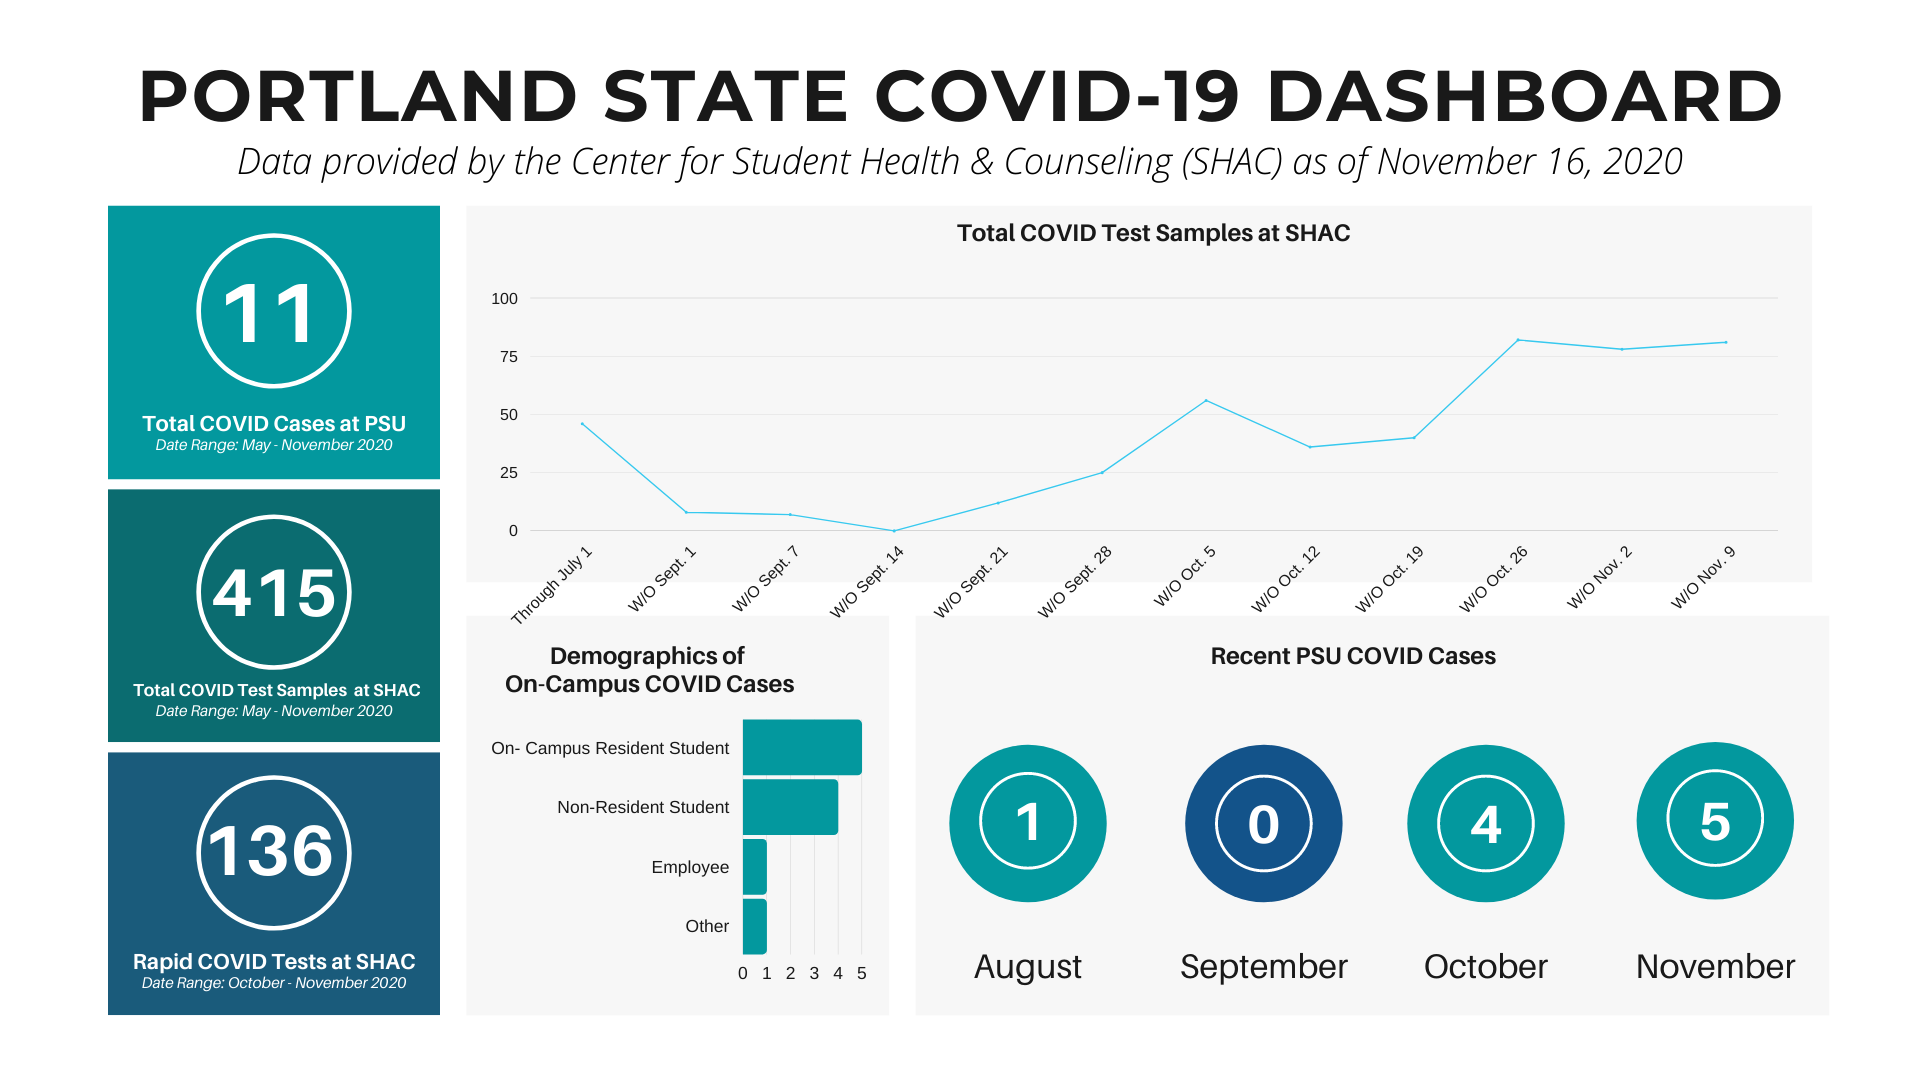 COVID Dashboard for Nov. 16, 2020 showing 551 total COVID tests at SHAC and 11 total positive cases on campus since spring; 5 cases were reported this month.